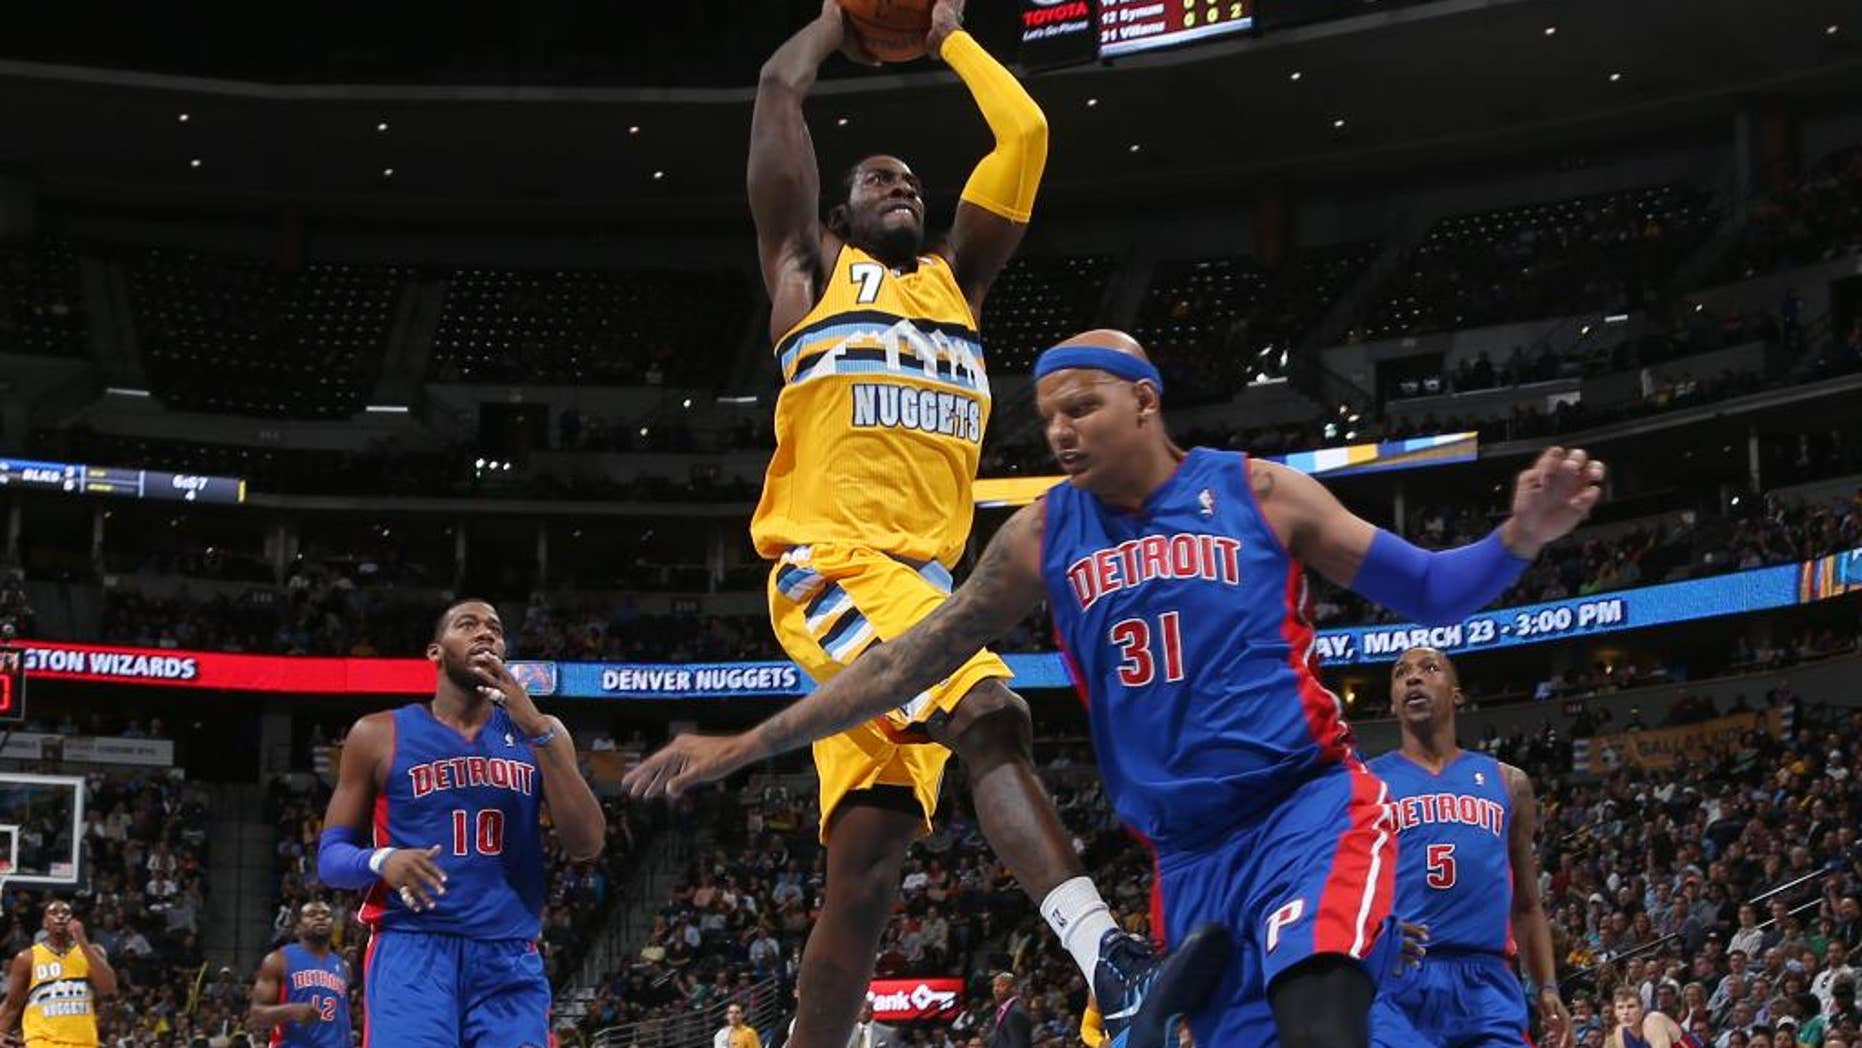 Denver Nuggets forward J.J. Hickson, center, drives for basket as Detroit Pistons forward Charlie Villanueva, right, and center Greg Monroe cover in the fourth quarter of the Nuggets' 118-109 victory in an NBA basketball game in Denver on Wednesday, March 19, 2014. (AP Photo/David Zalubowski)